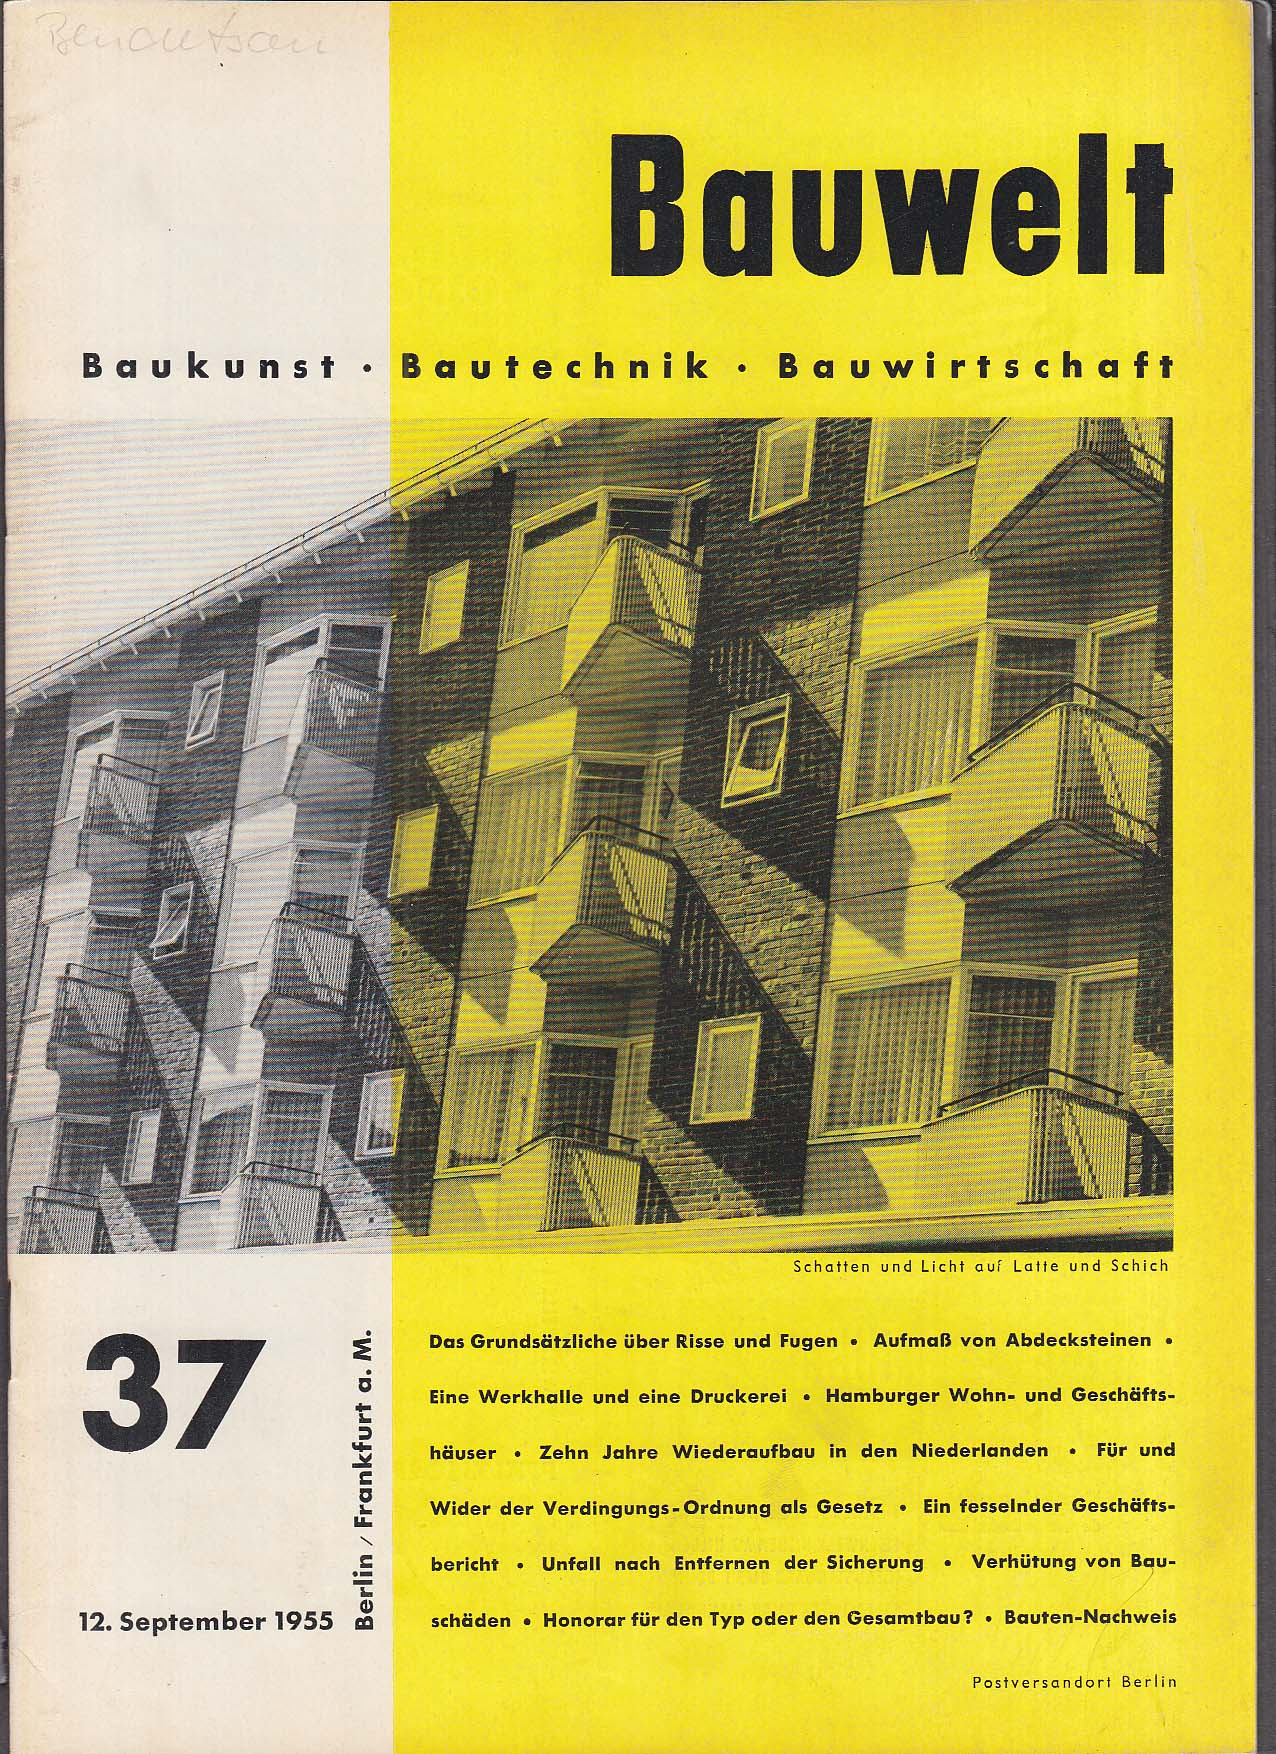 Bauwelt German architecture magazine 9/12/1955 37